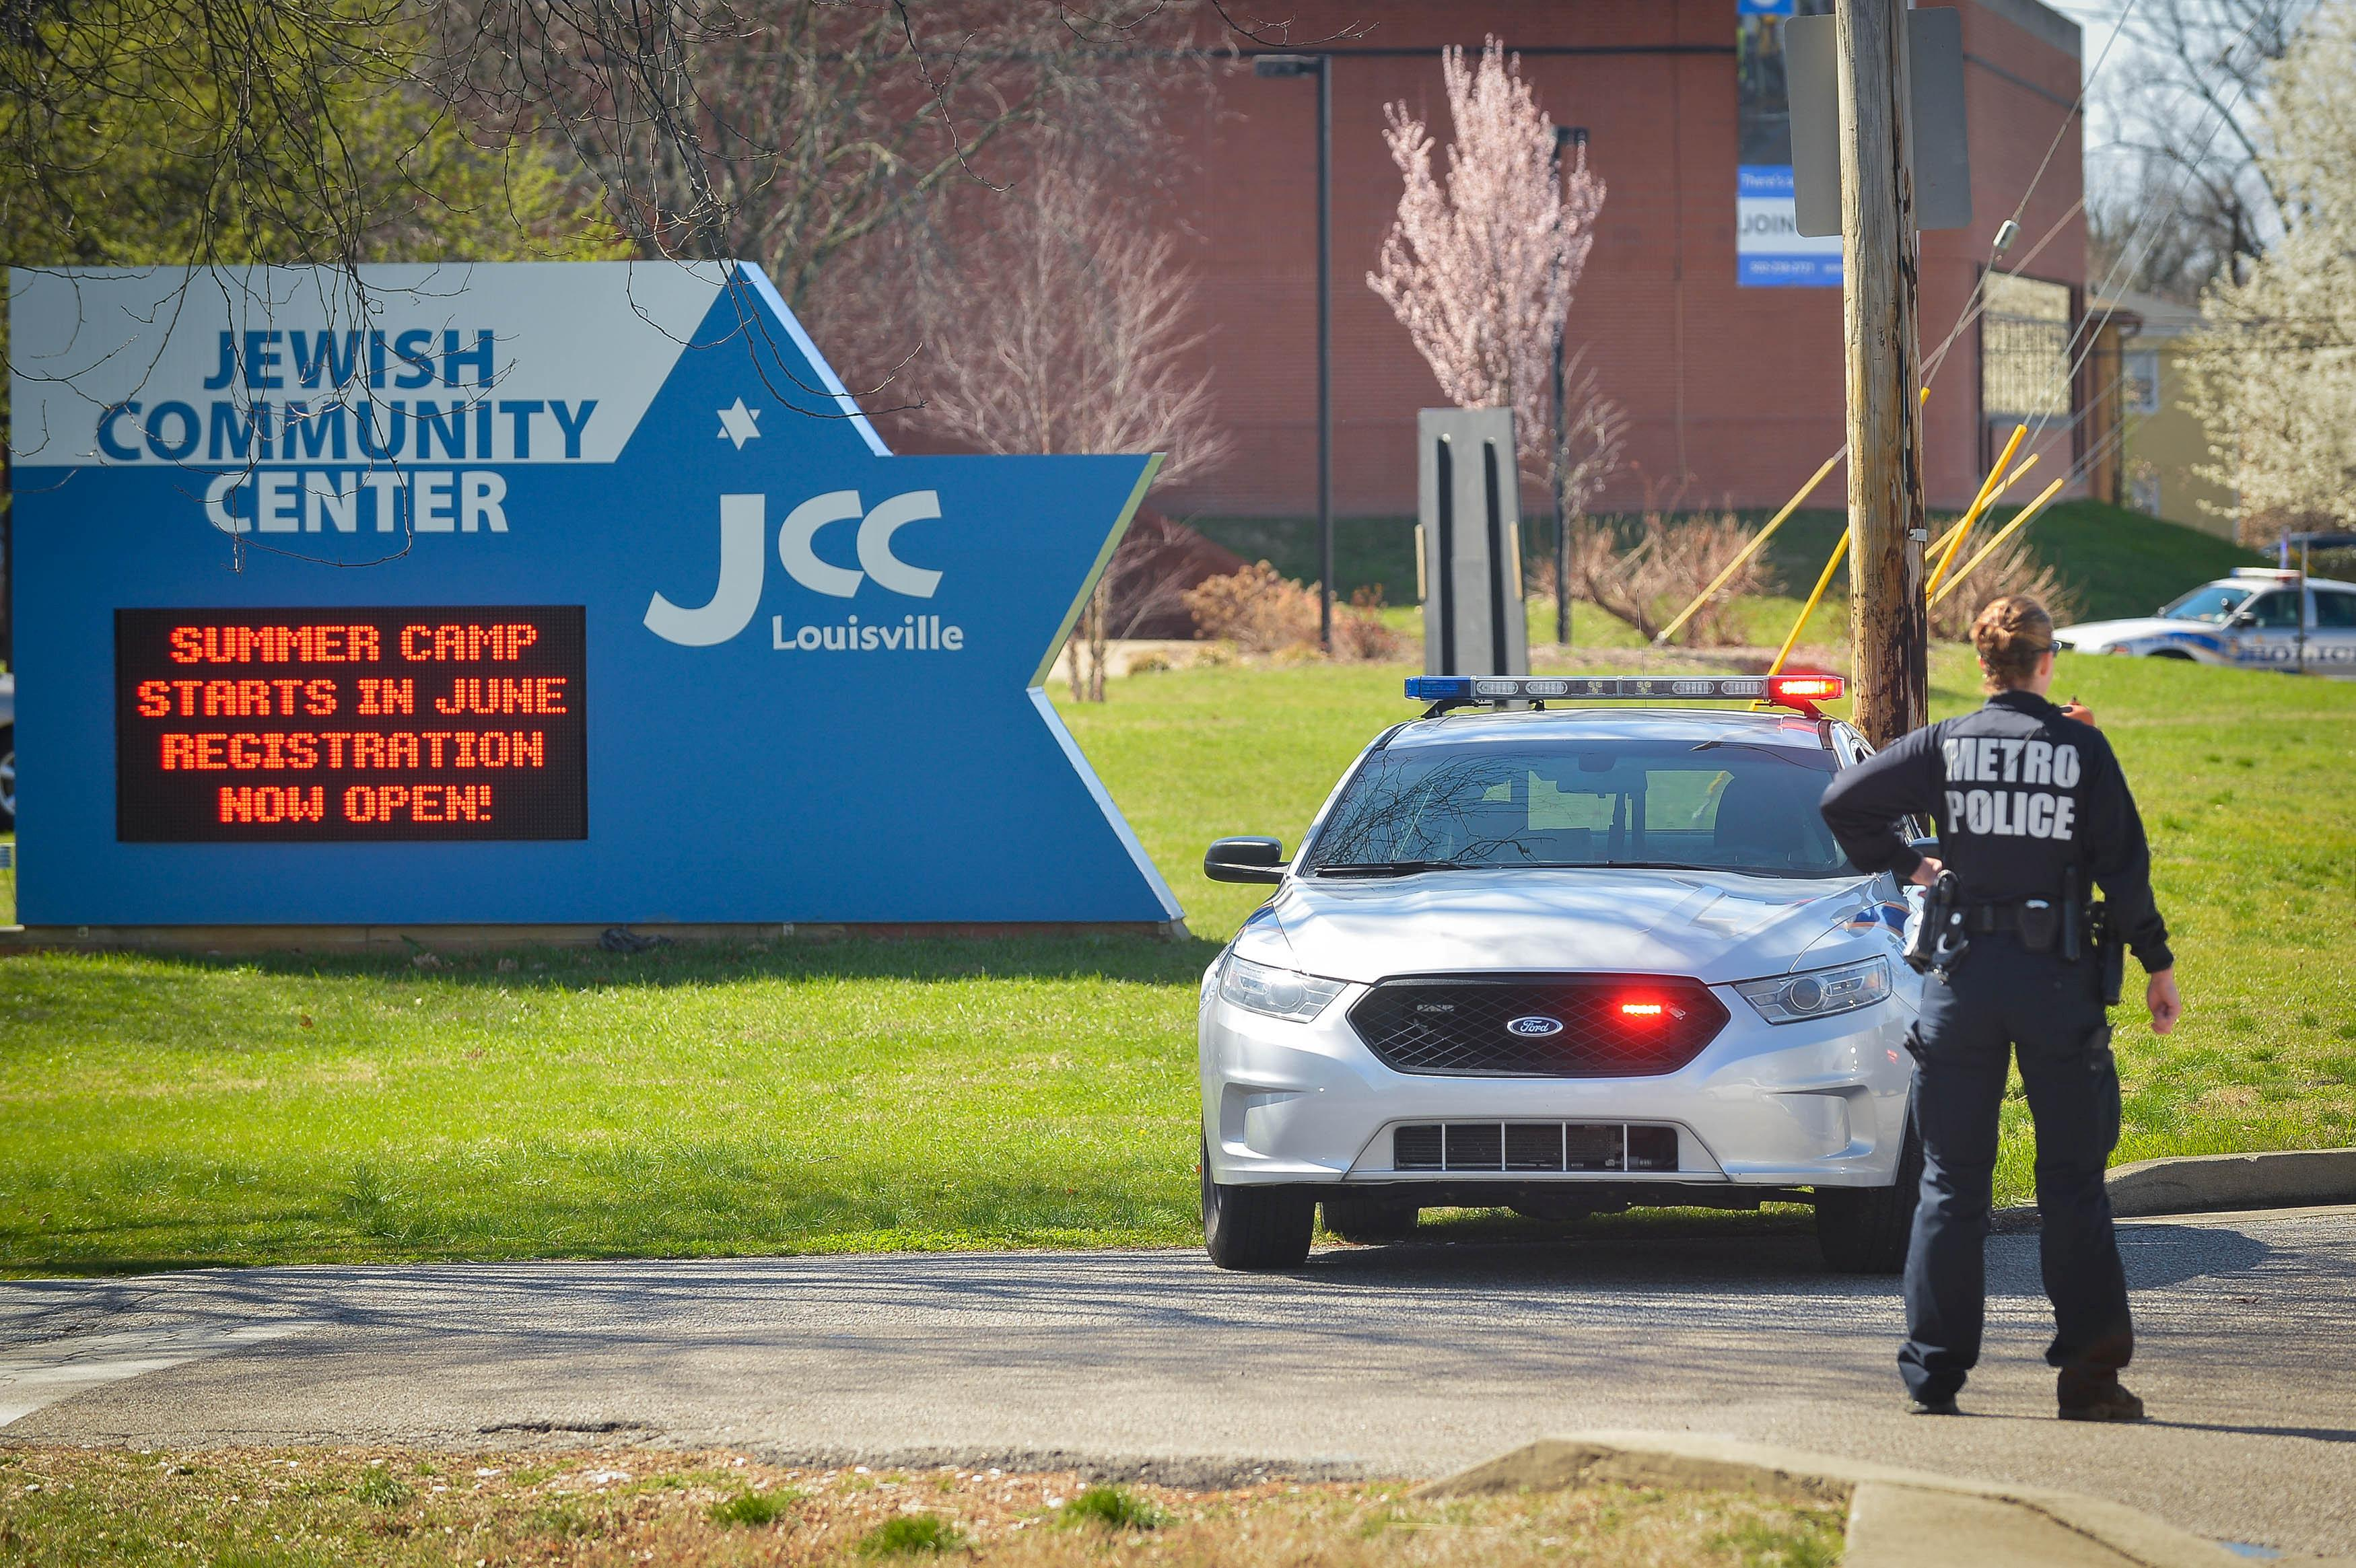 West Hartford JCC receives bomb threat